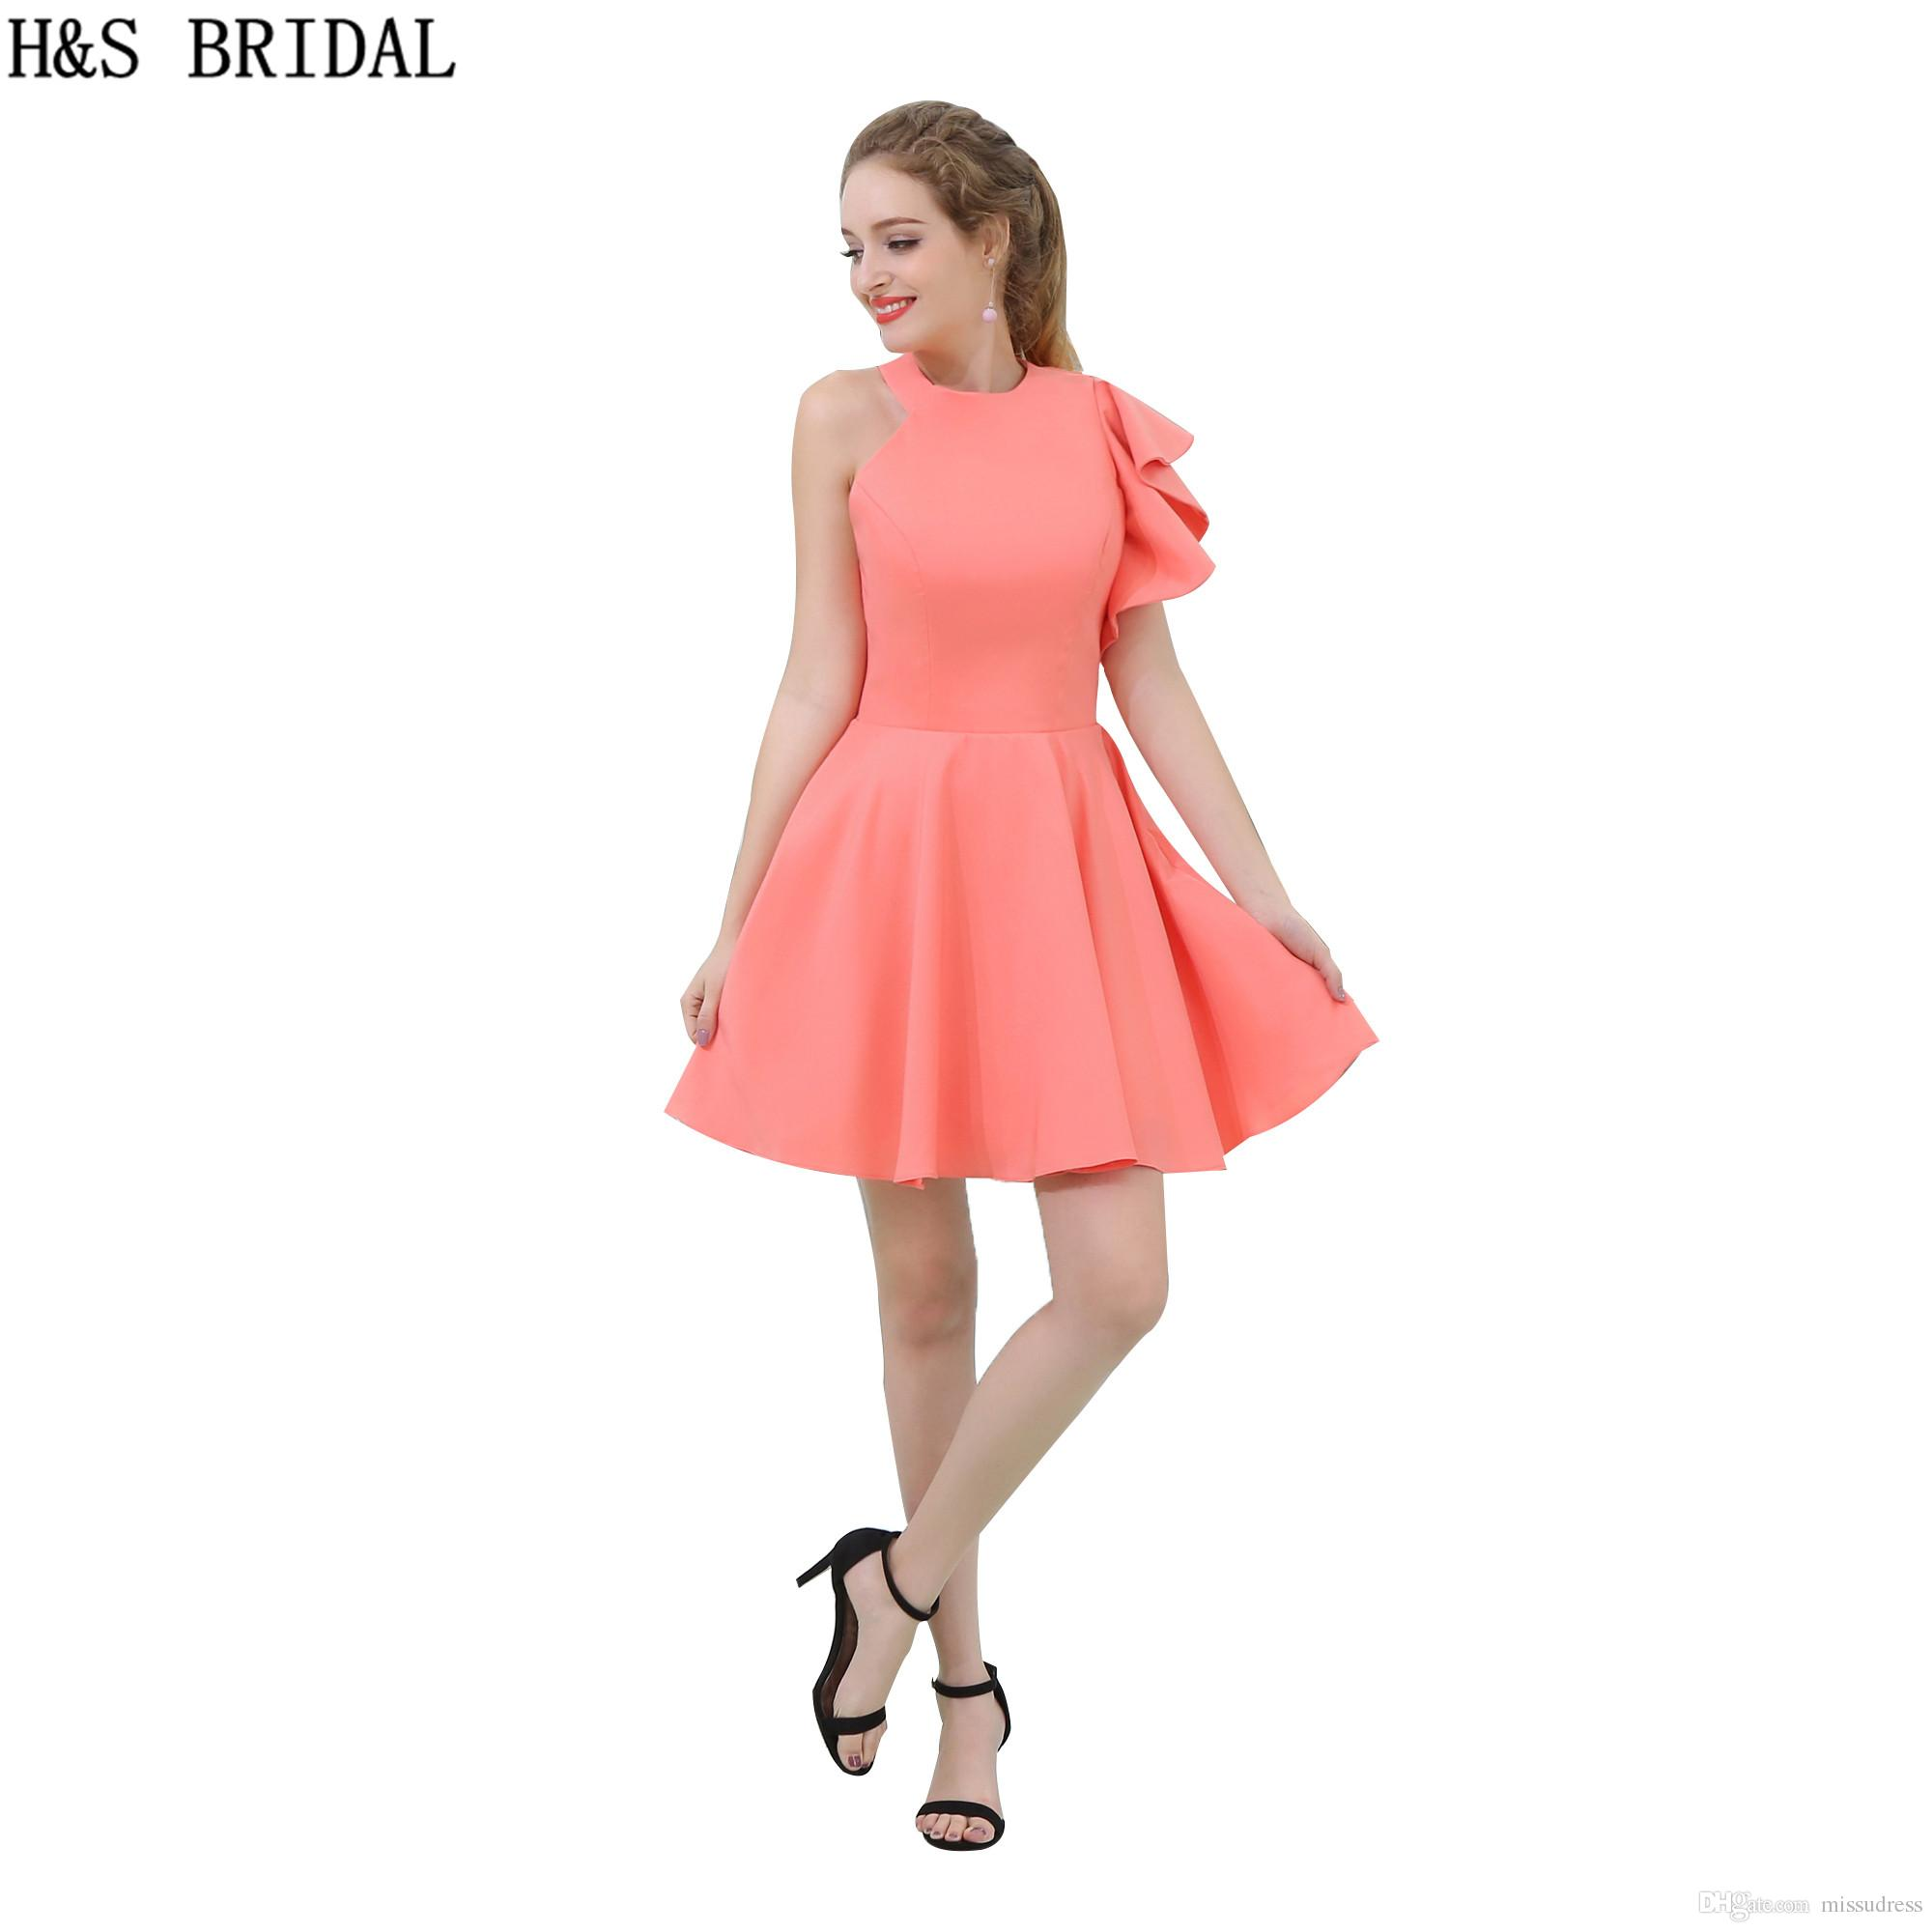 Coral Satin Bridesmaid Dress 2017 Short Cheap Jewel Neck Open Back Girls  Party Gowns Short Prom Dresses B058 Wedding Bridesmaid Wine Colored  Bridesmaid ... 21020165a577